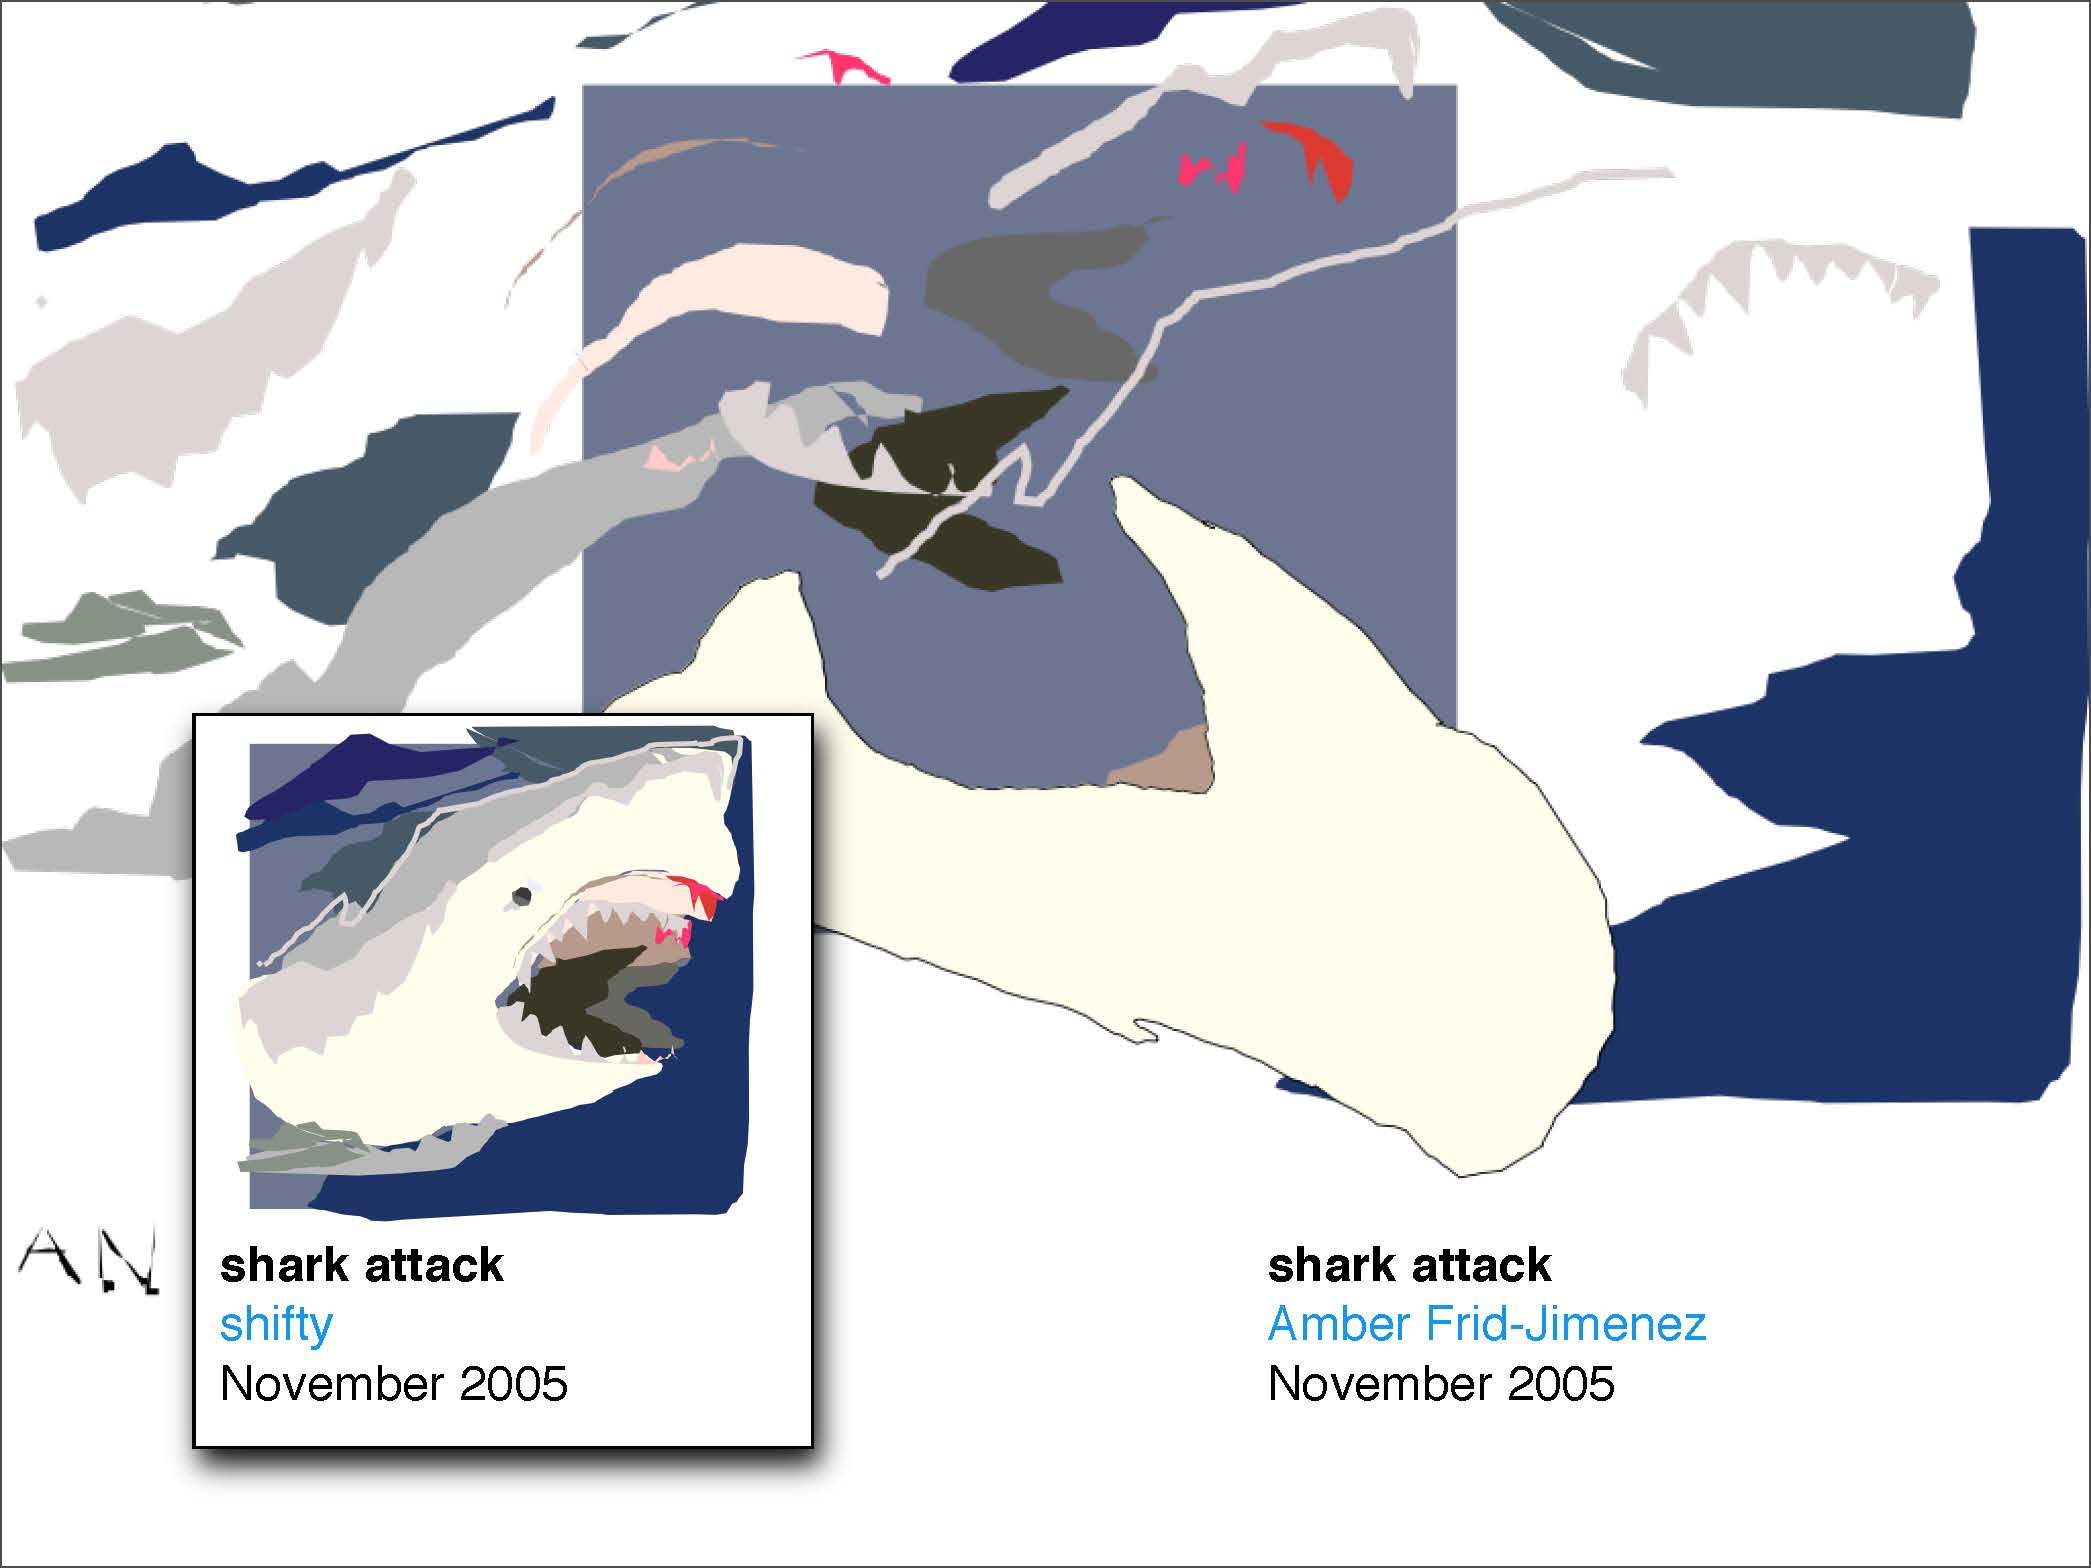 Dismantled shark drawing destroyed by one user, with the original reappropriated by another user